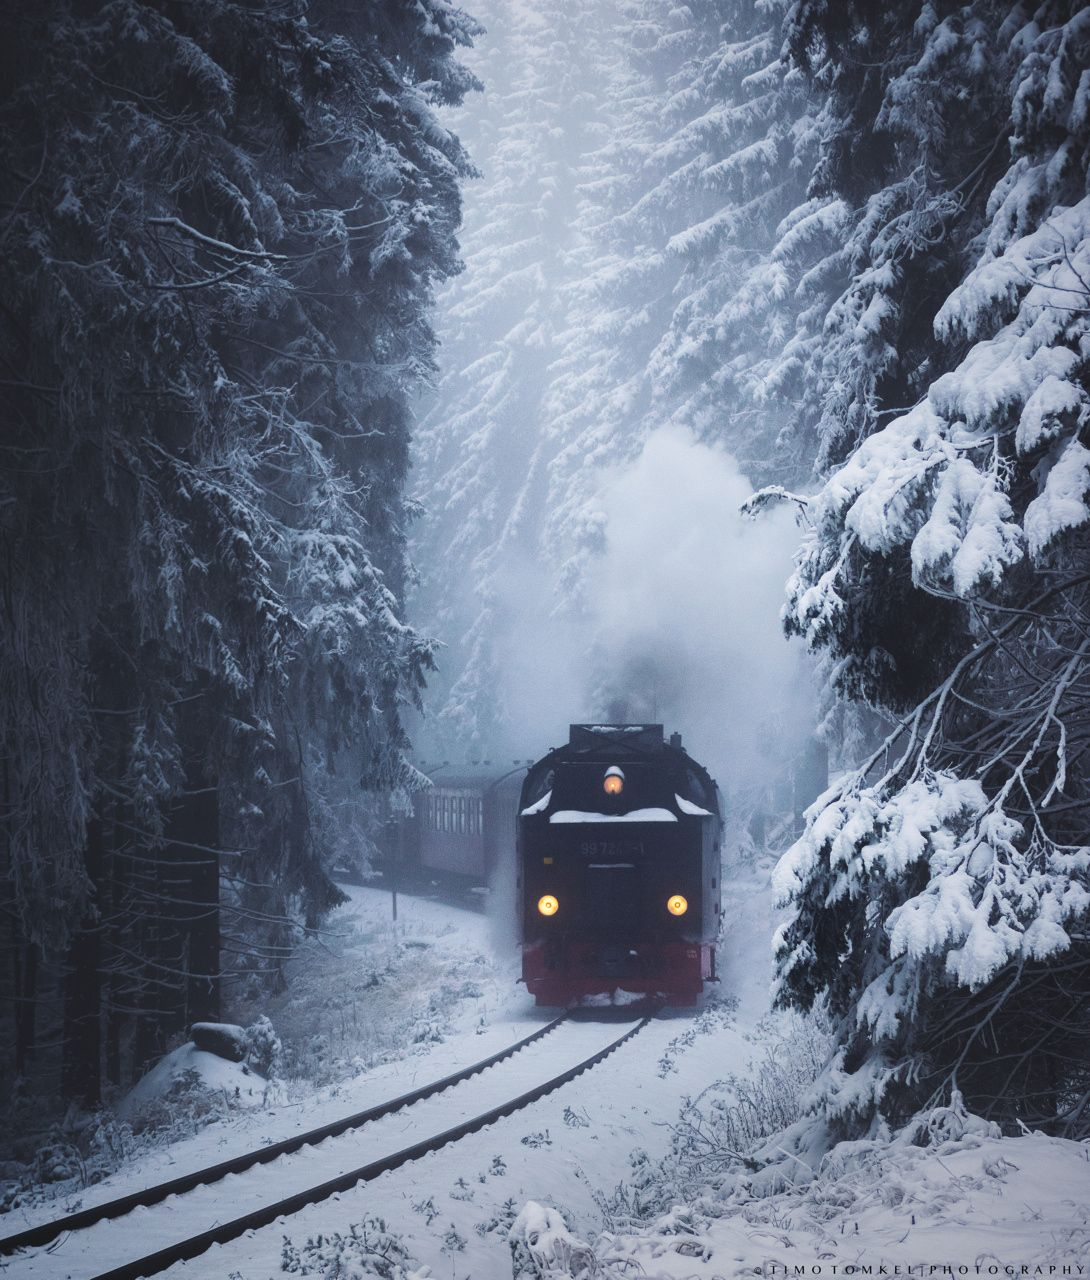 The Last Train Winter Snow Photography Winter Snow Wallpaper Winter Scenery Hd wallpaper winter snow train forest